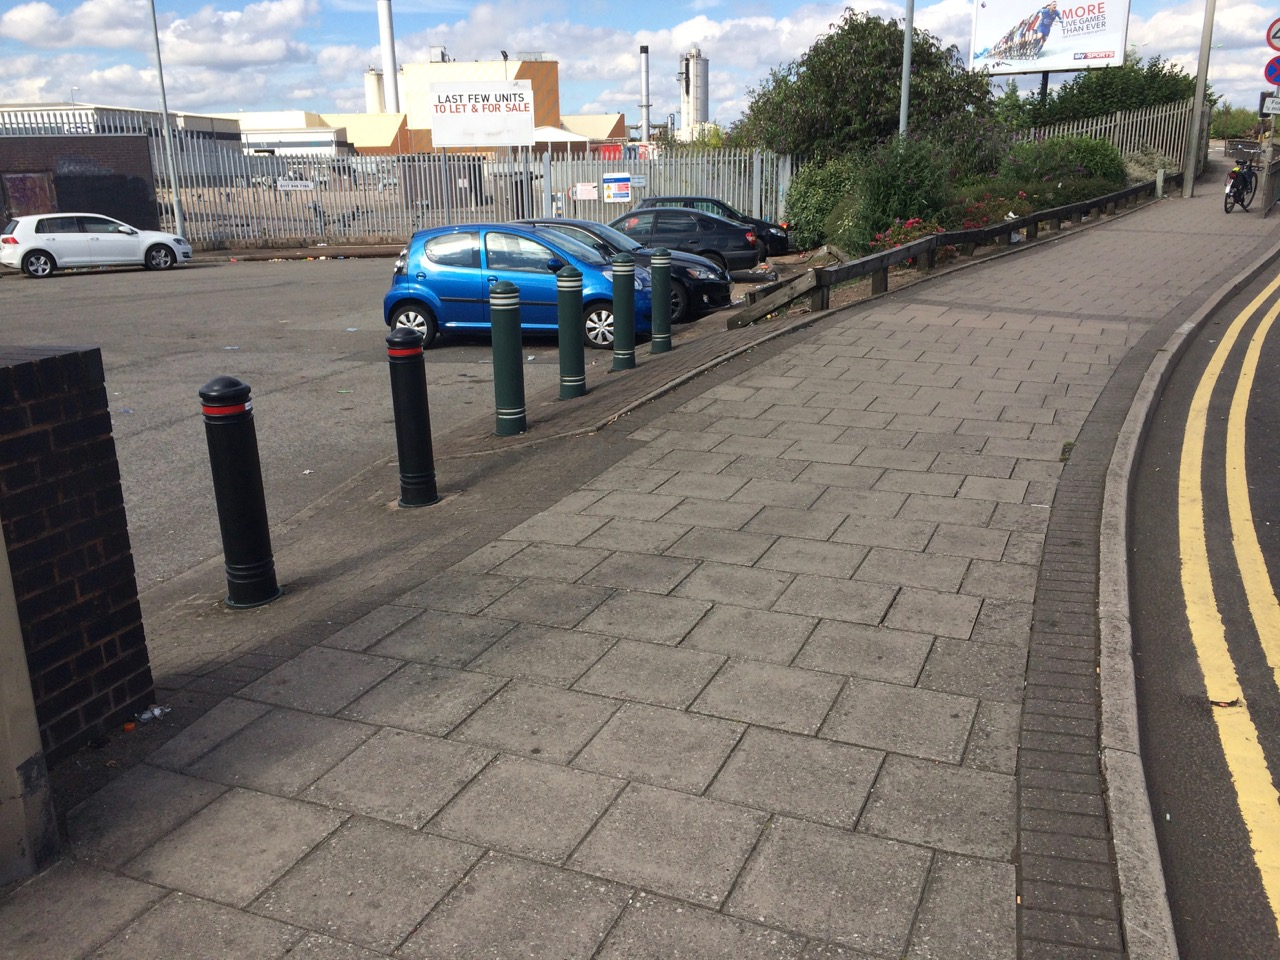 Filtered permeability at Nechells Place